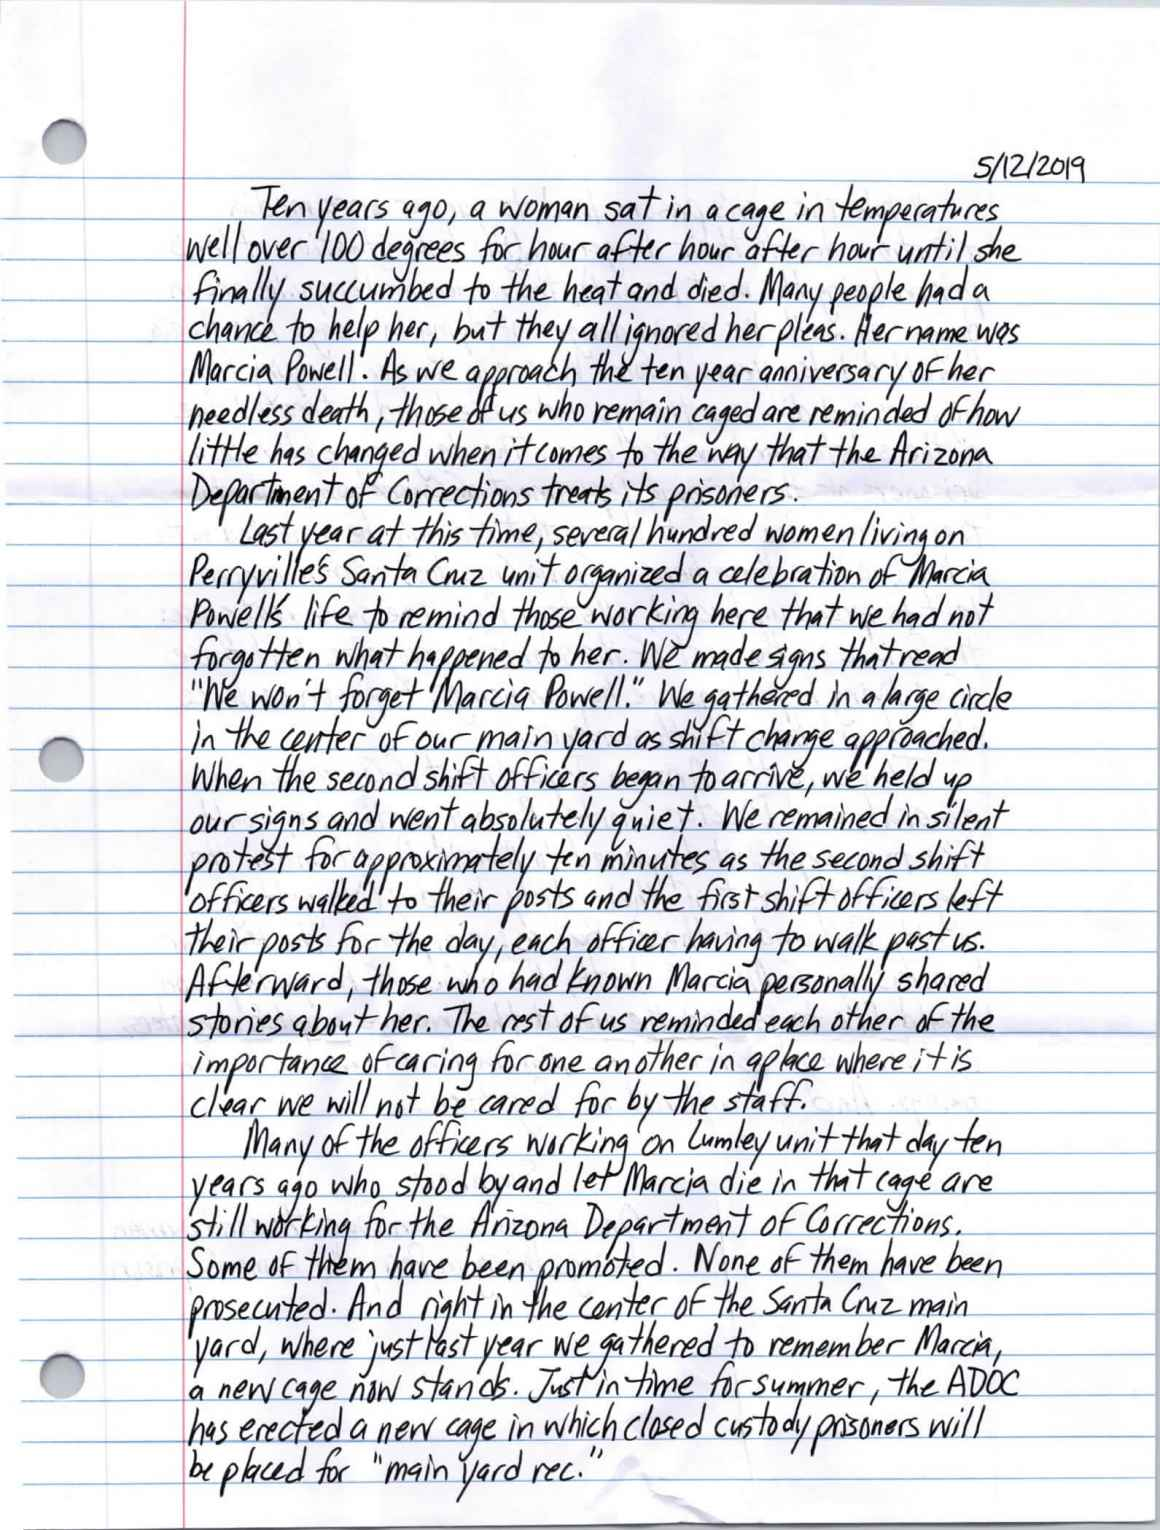 Perryville Letter Page 1_Page_1.jpg